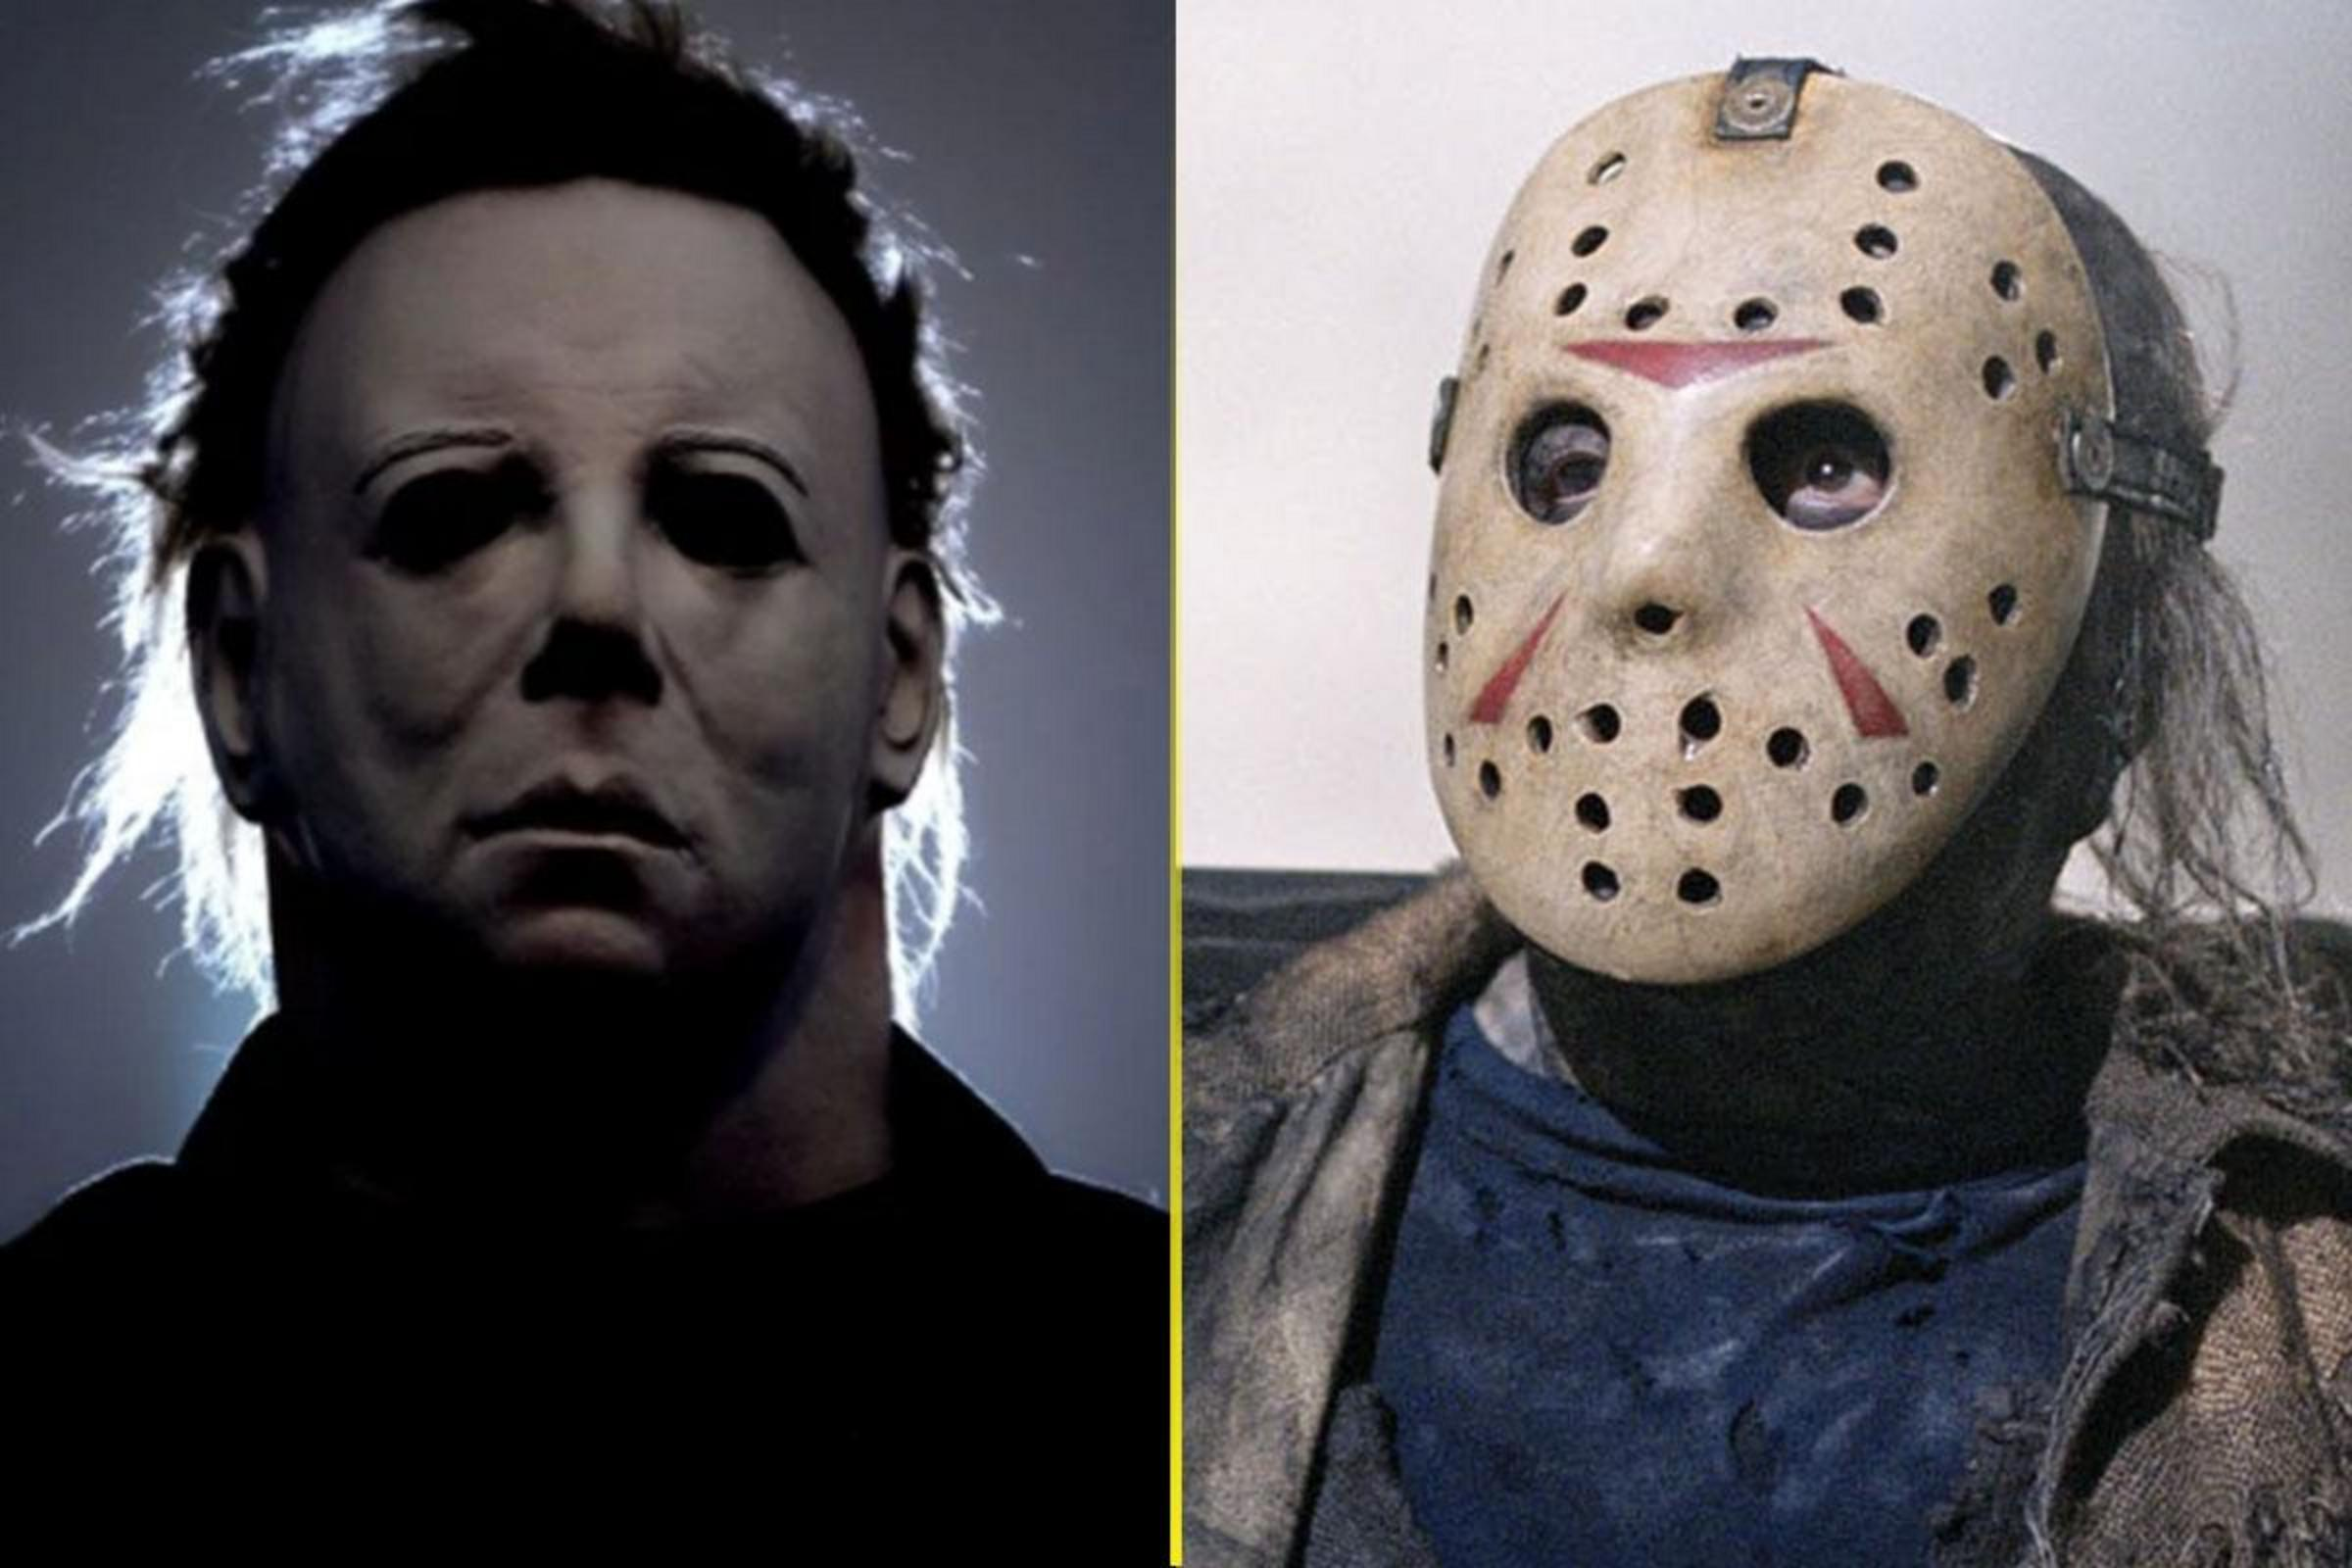 Halloween/Friday The 13th.